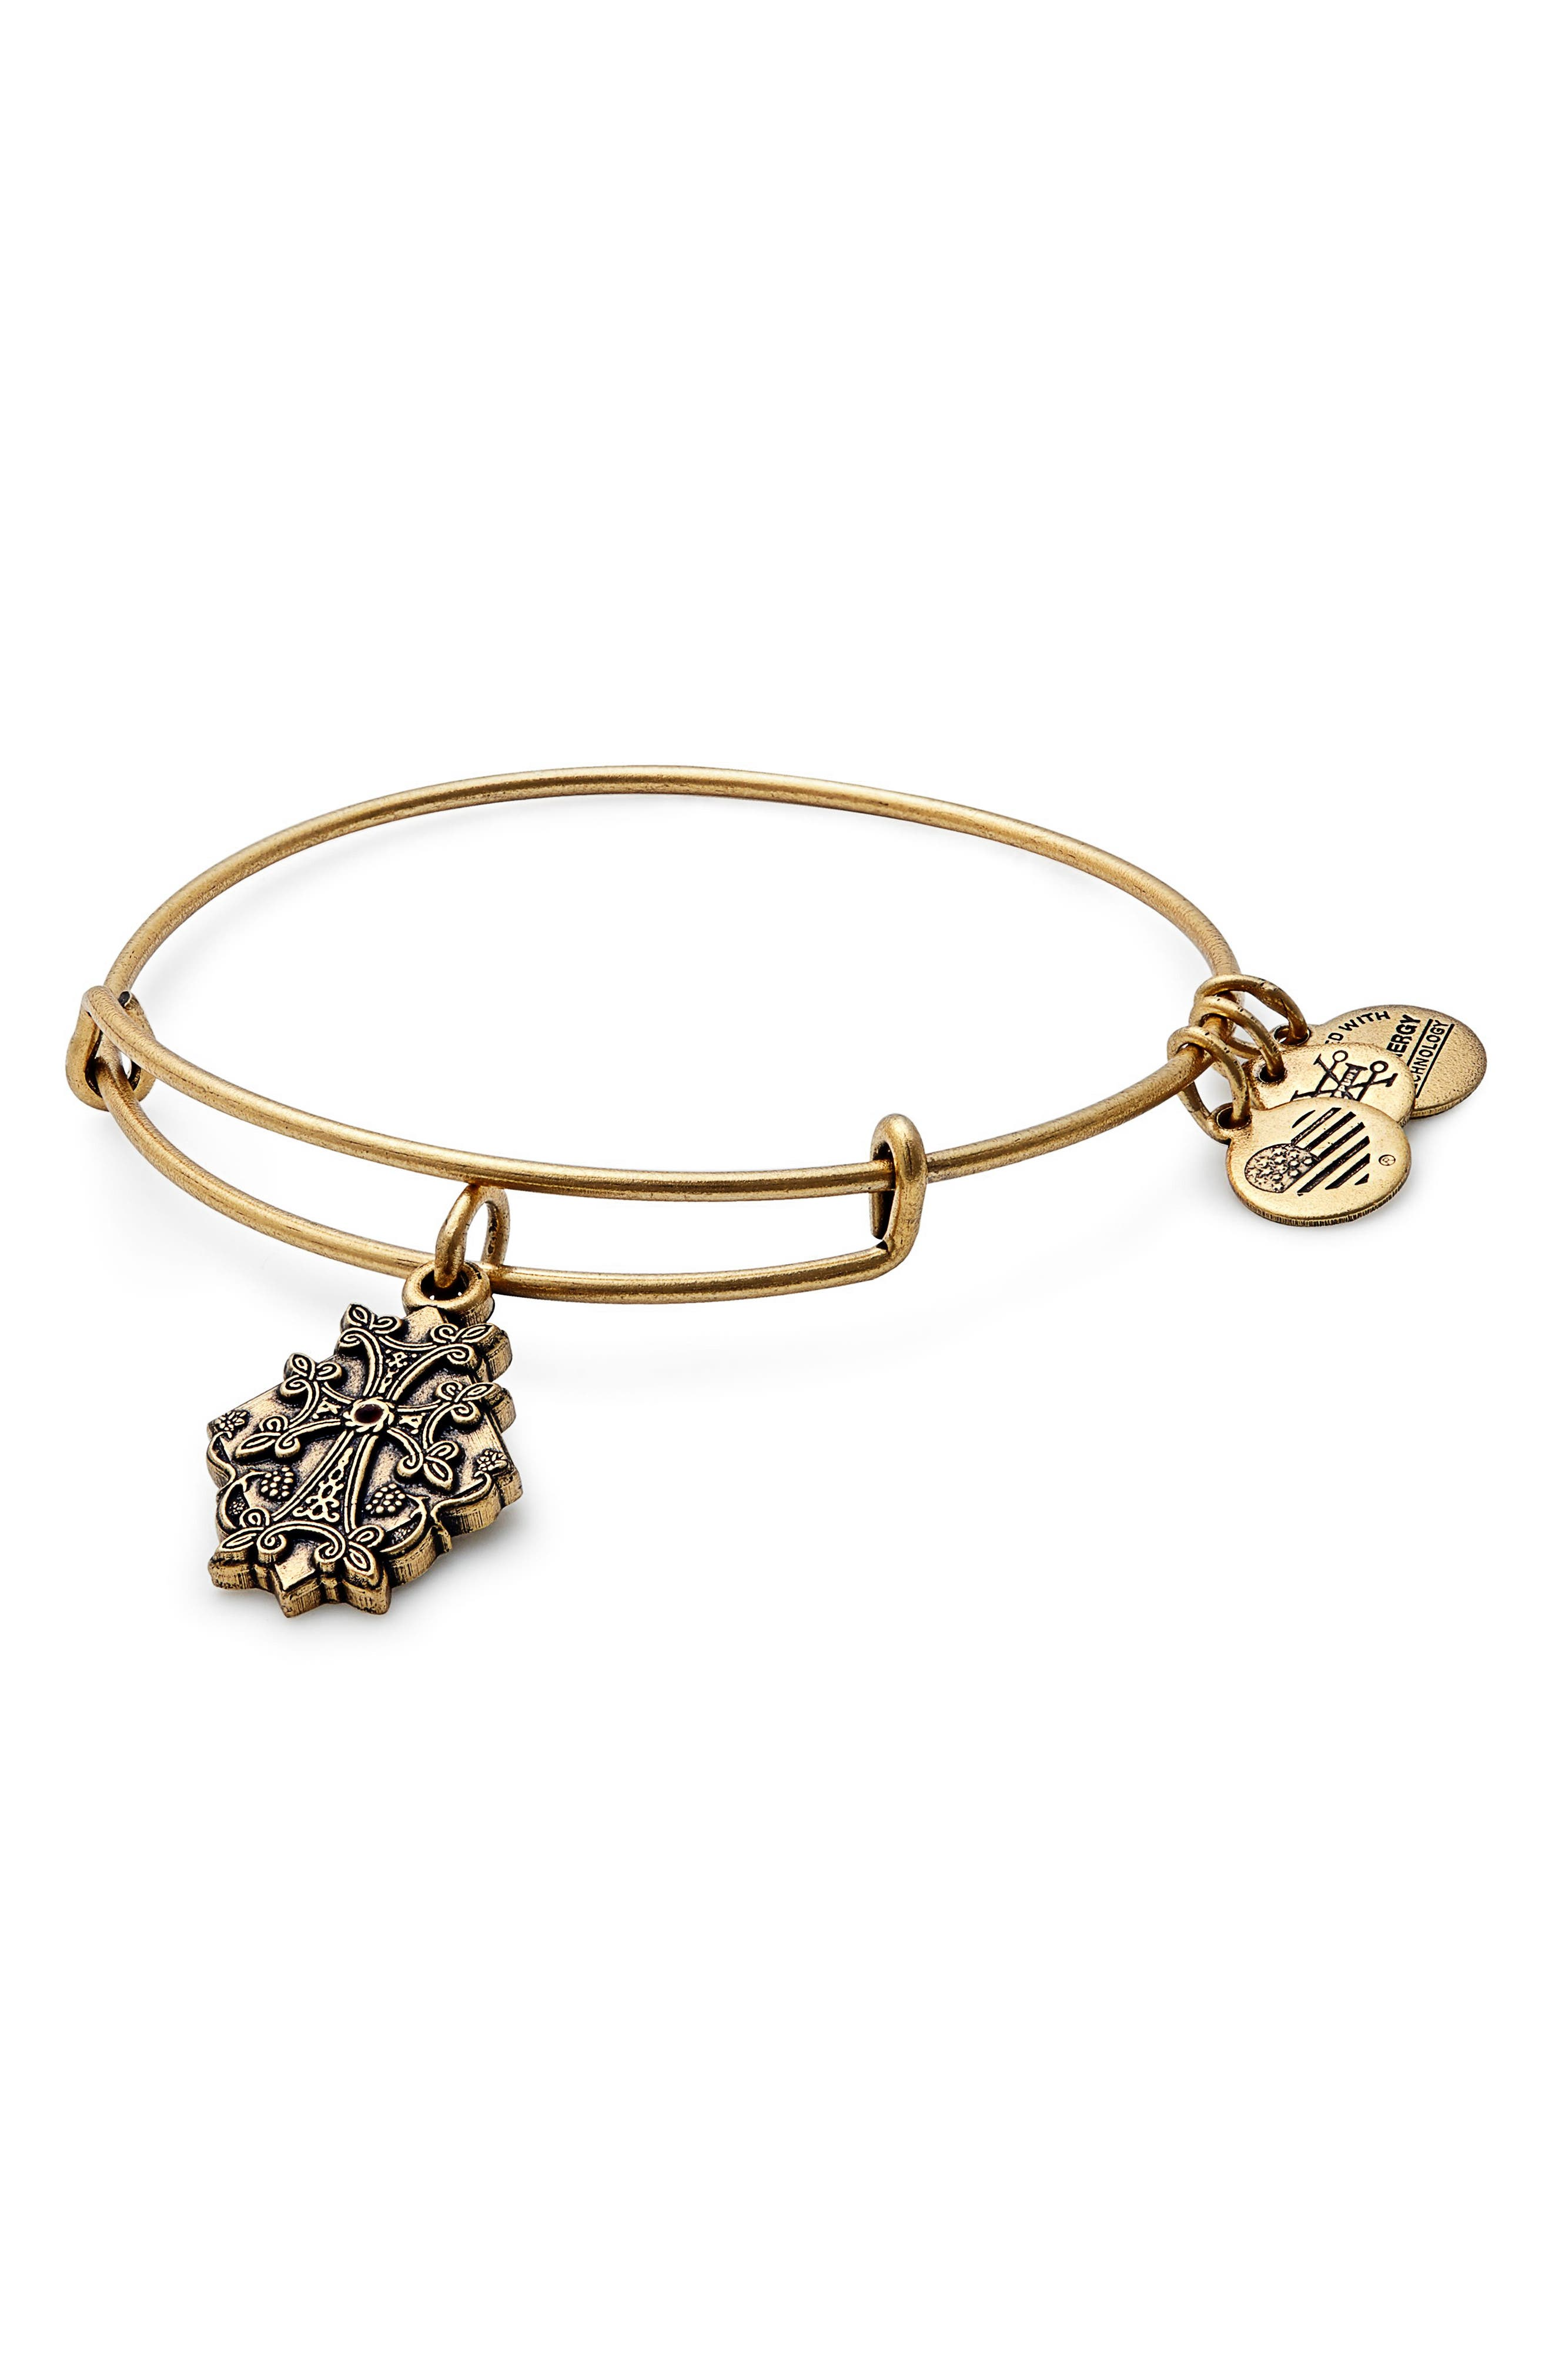 Main Image - Alex and Ani Armenian Cross Adjustable Wire Bangle